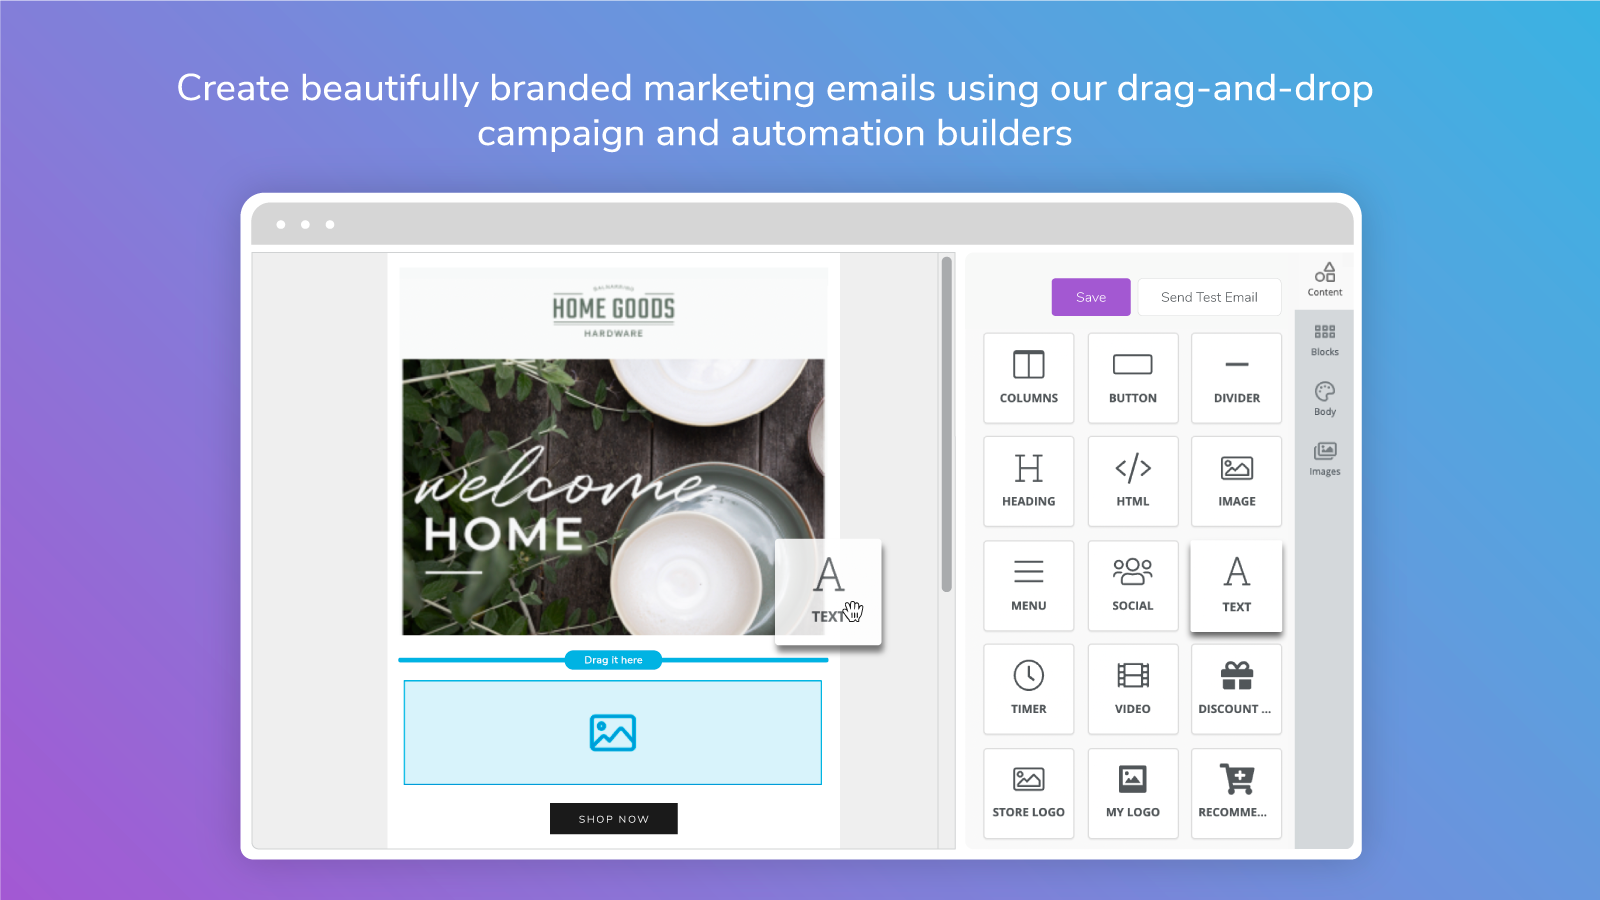 Email campaign built with Marsello's drag-and-drop builder